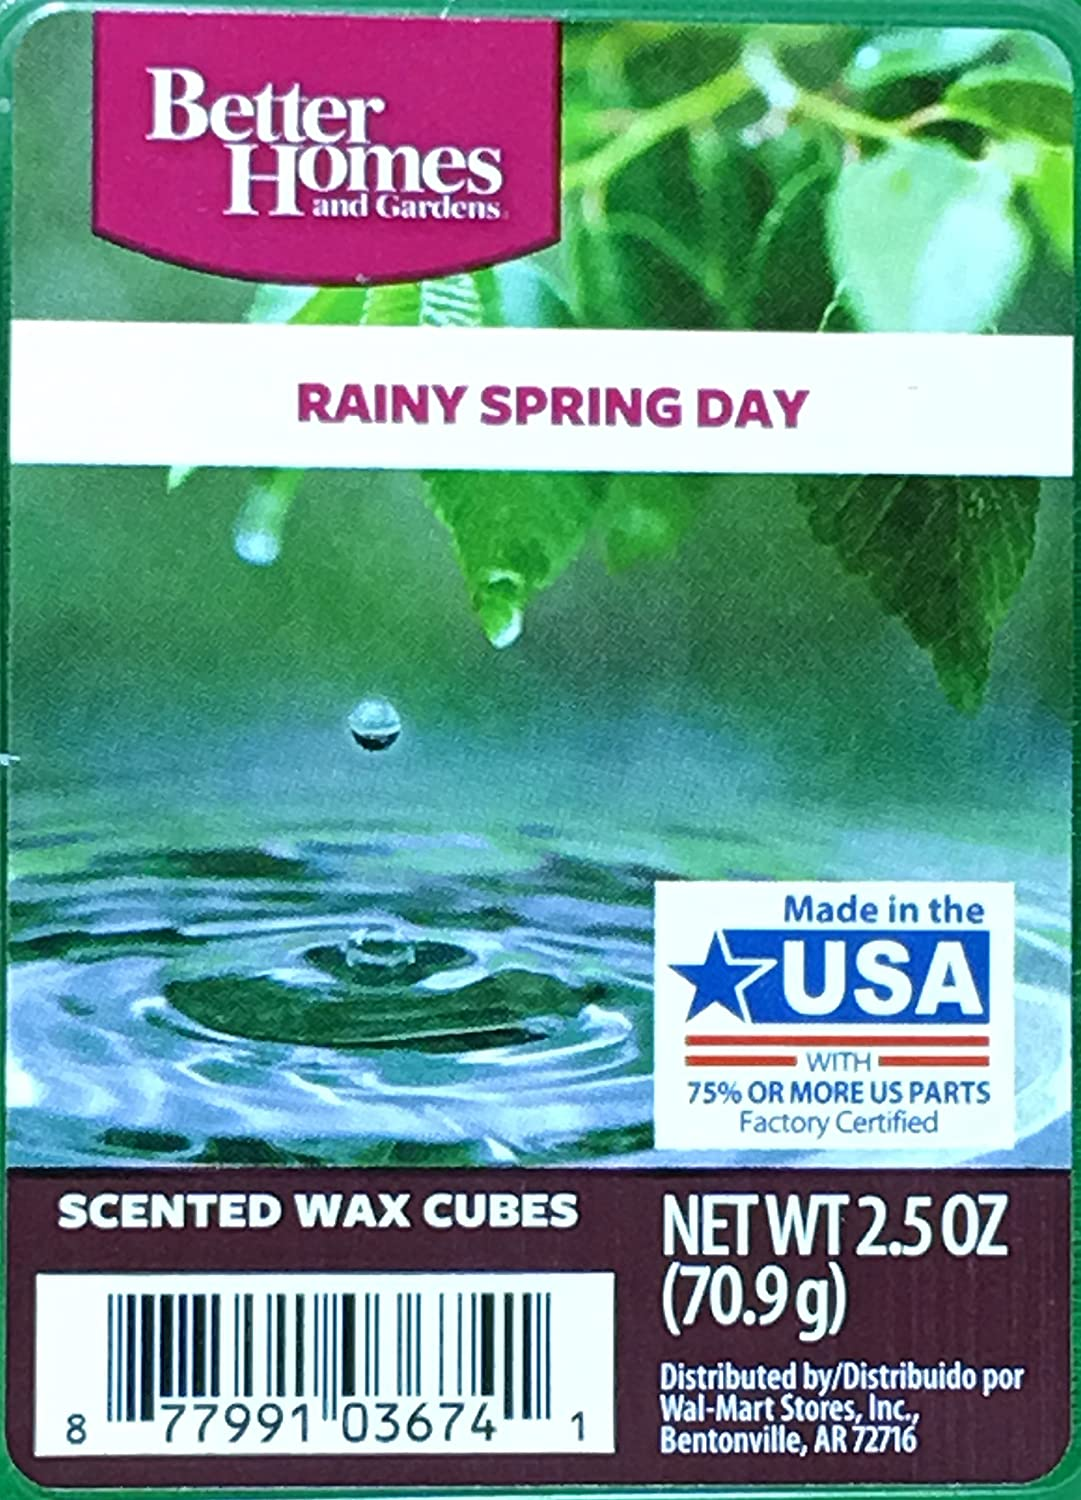 Better Homes and Gardens Rainy Spring Day Wax Cubes, 2.5 oz